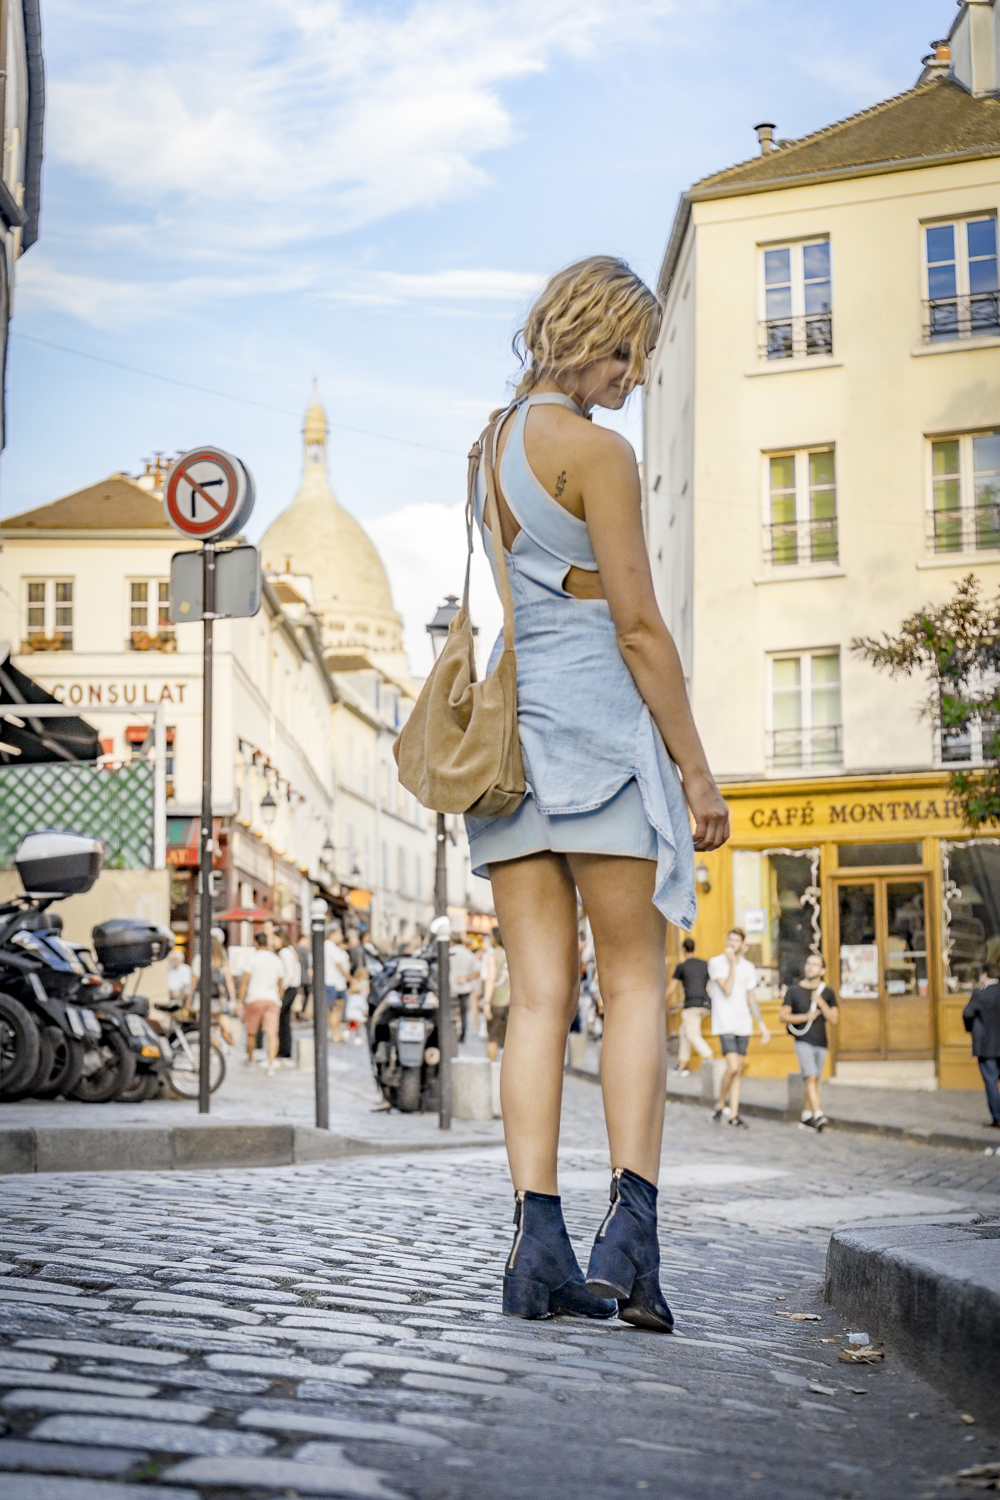 blue-dress-mini-denim-mango-shirt-hm-shoes-navy-boots-ootd-lookbook-look-outfit-blonde-tumblr-girl-paris-street-style-fashion-clothes